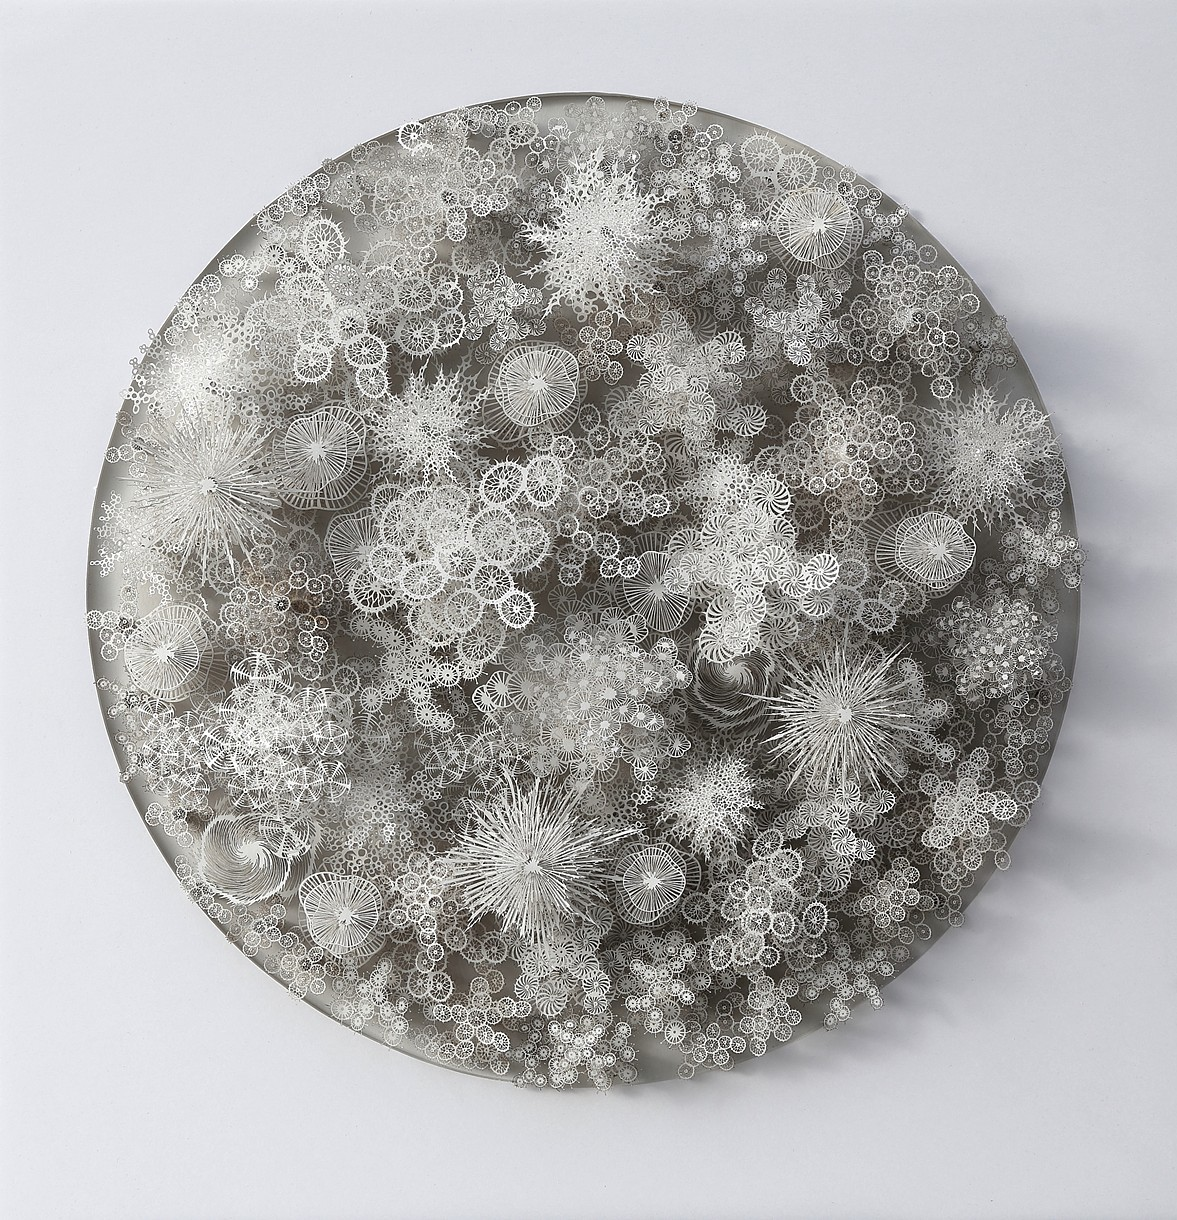 Microbiological Motifs Through Laser Cut Paper by Rogan Brown